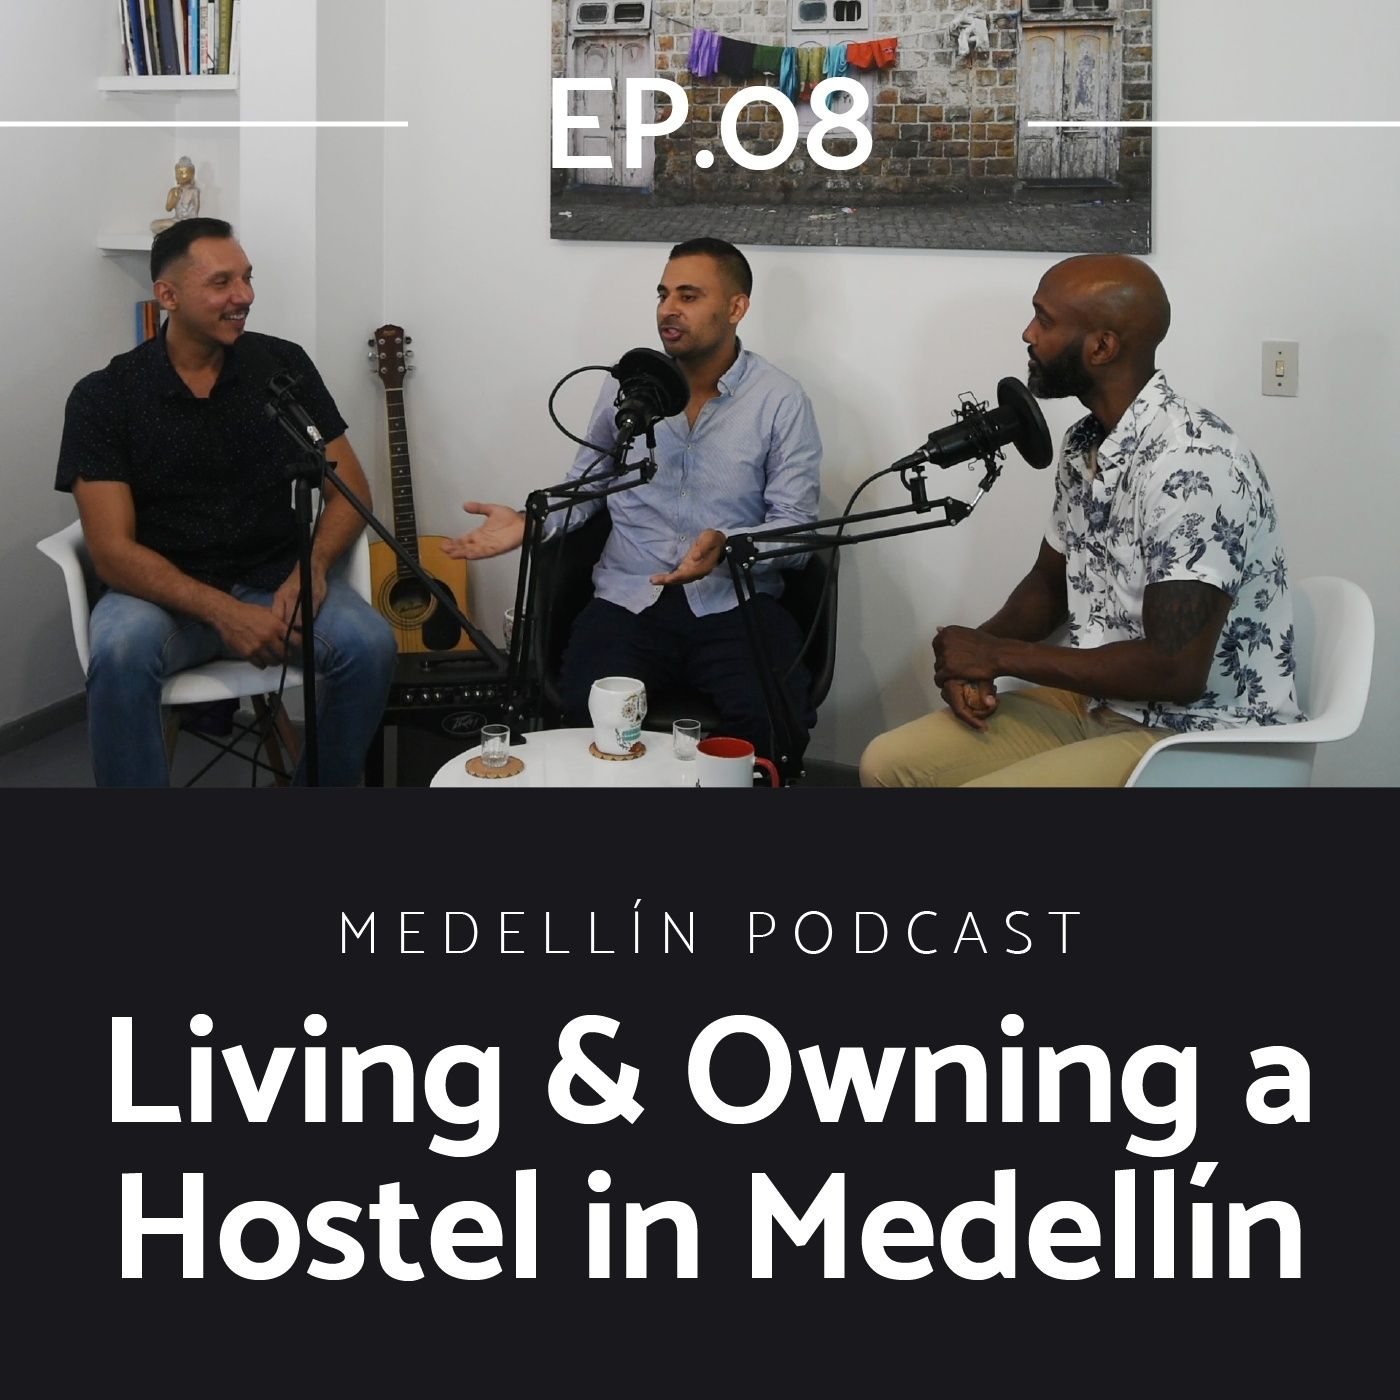 Living and Owning a Hostel in Medellin - Medellin Podcast Ep. 08